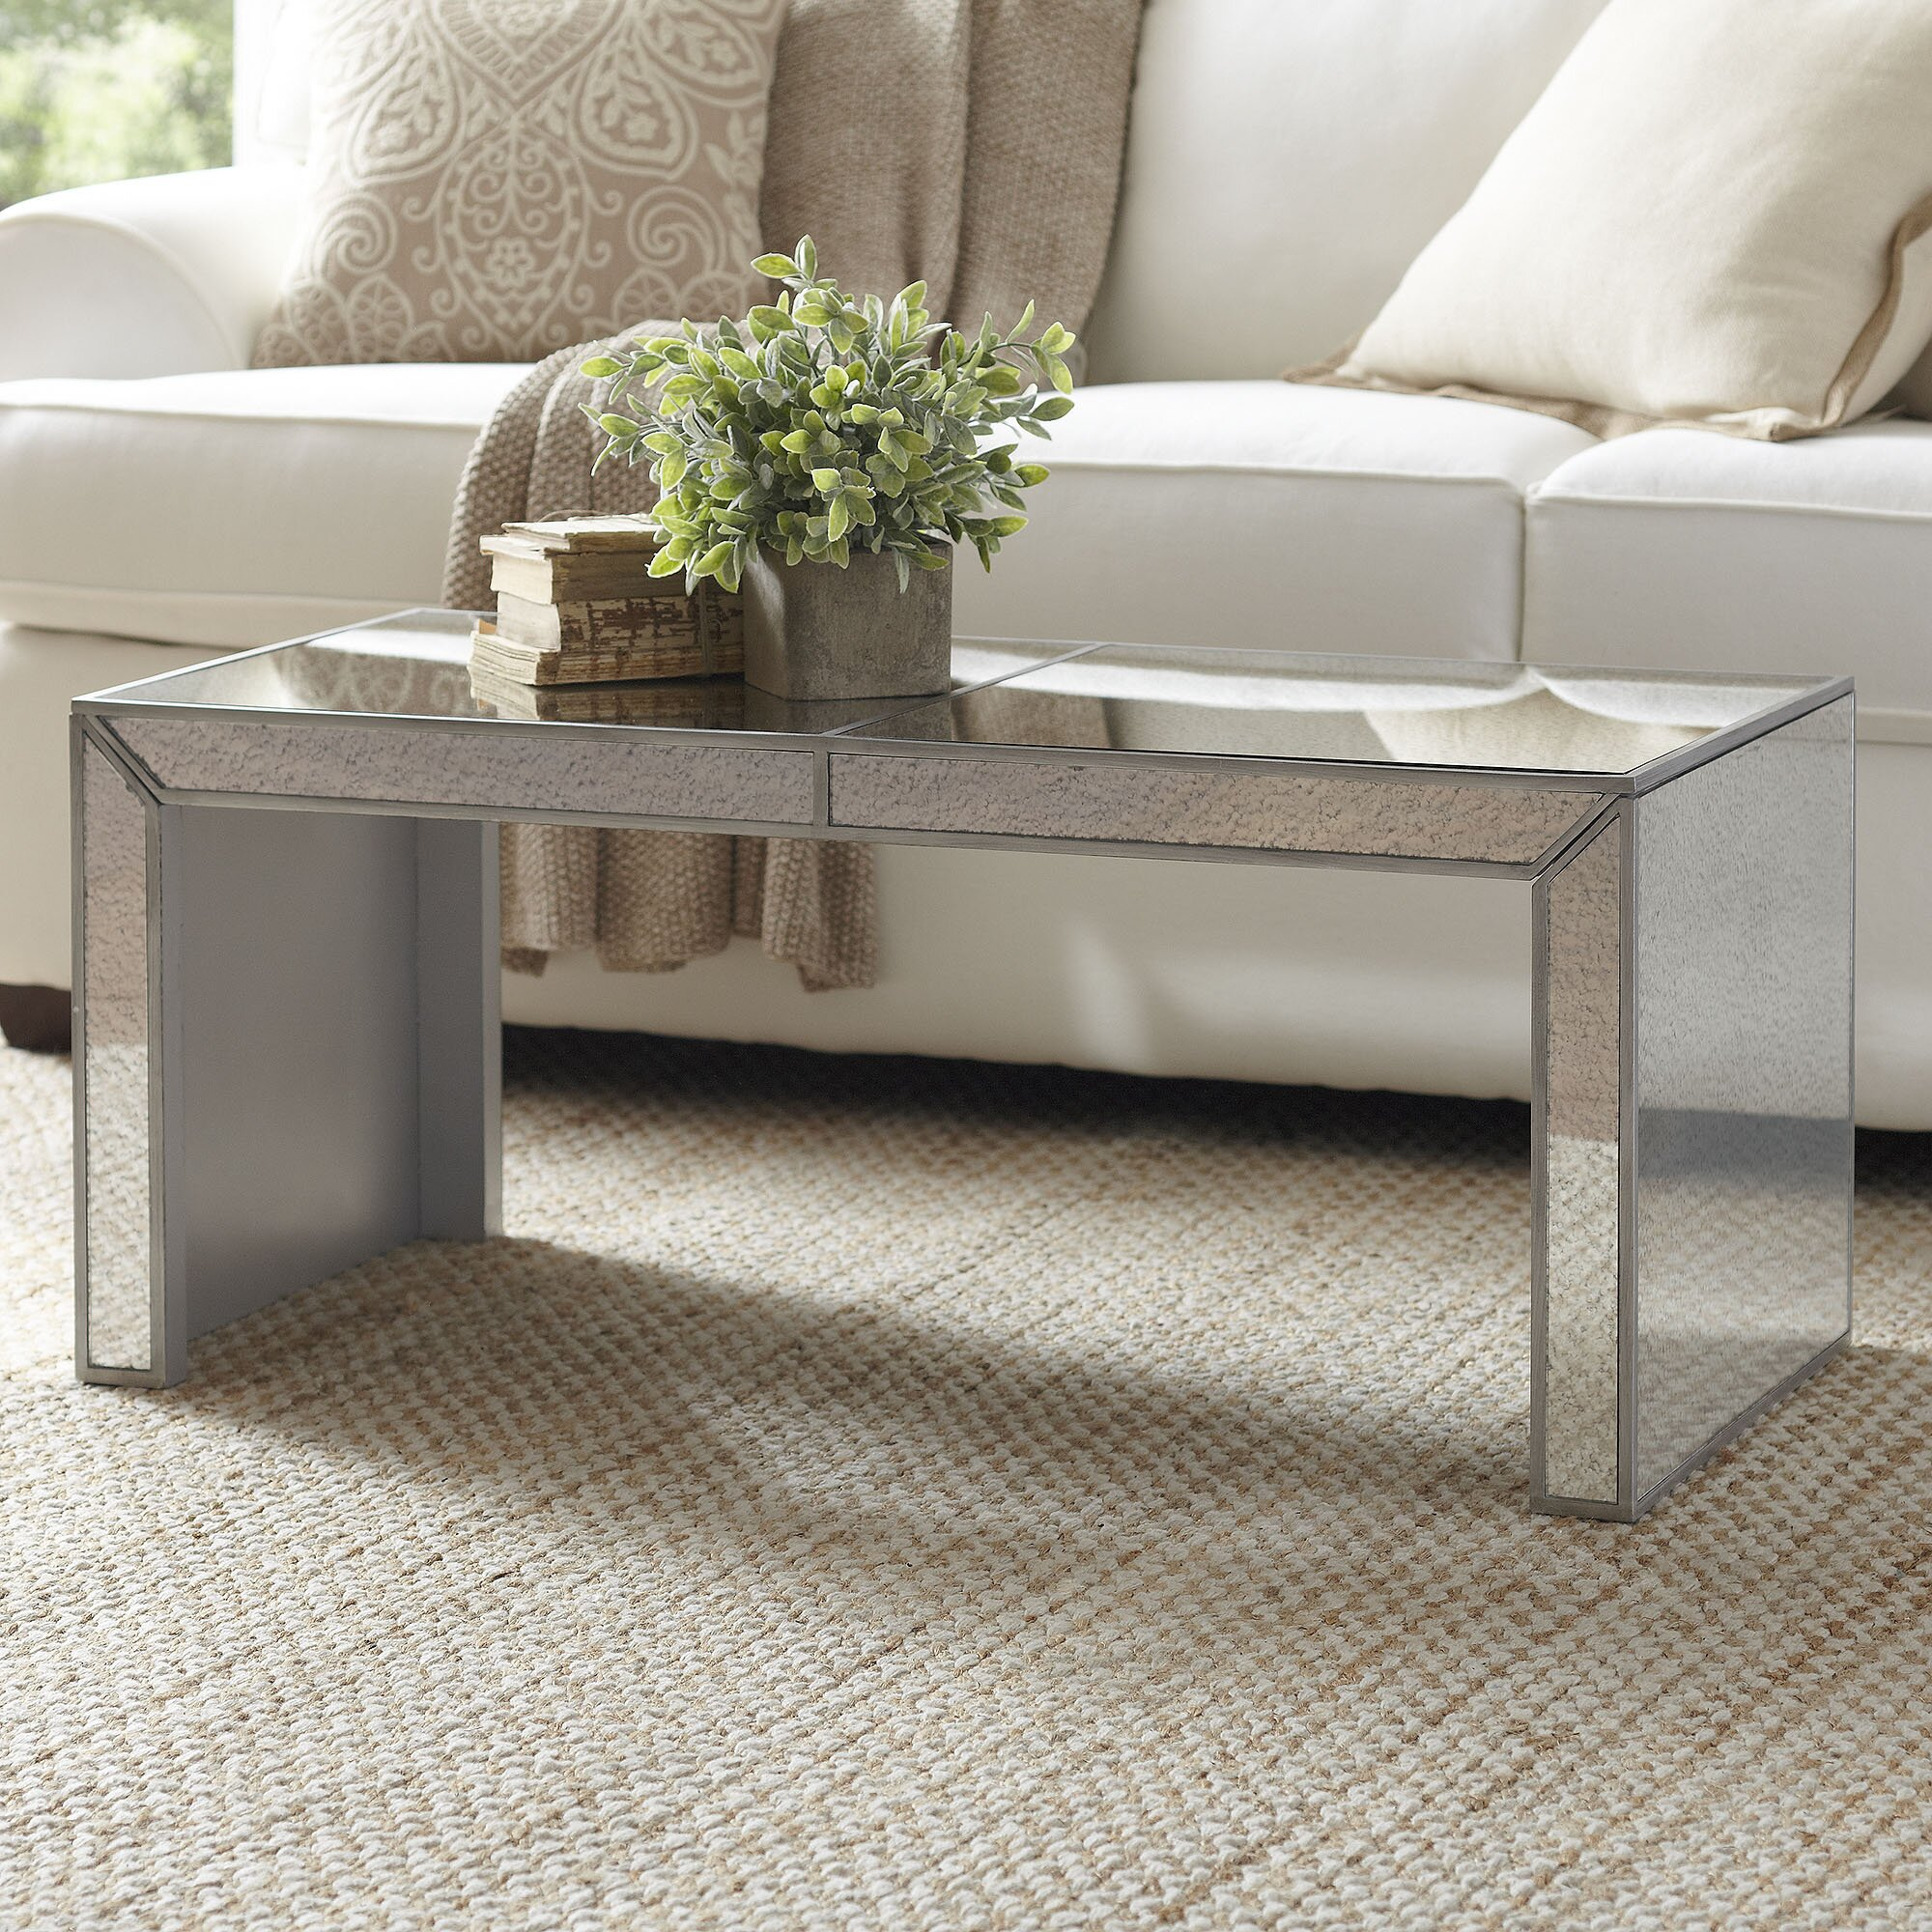 Birch Lane Elliott Mirrored Coffee Table & Reviews